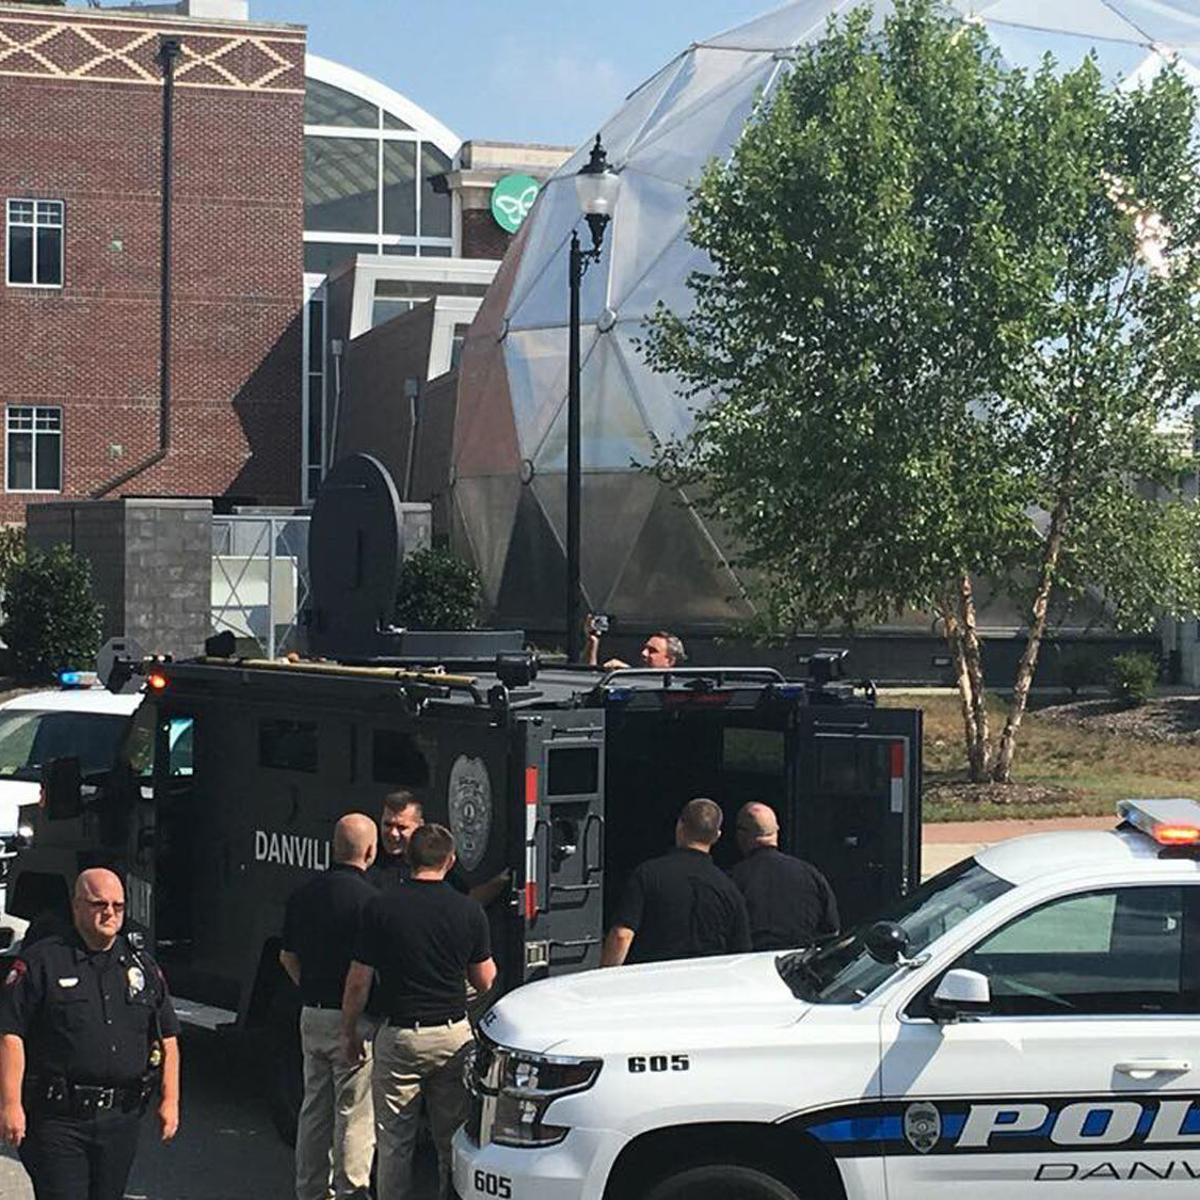 Rising to national challenge, Danville officers hit the